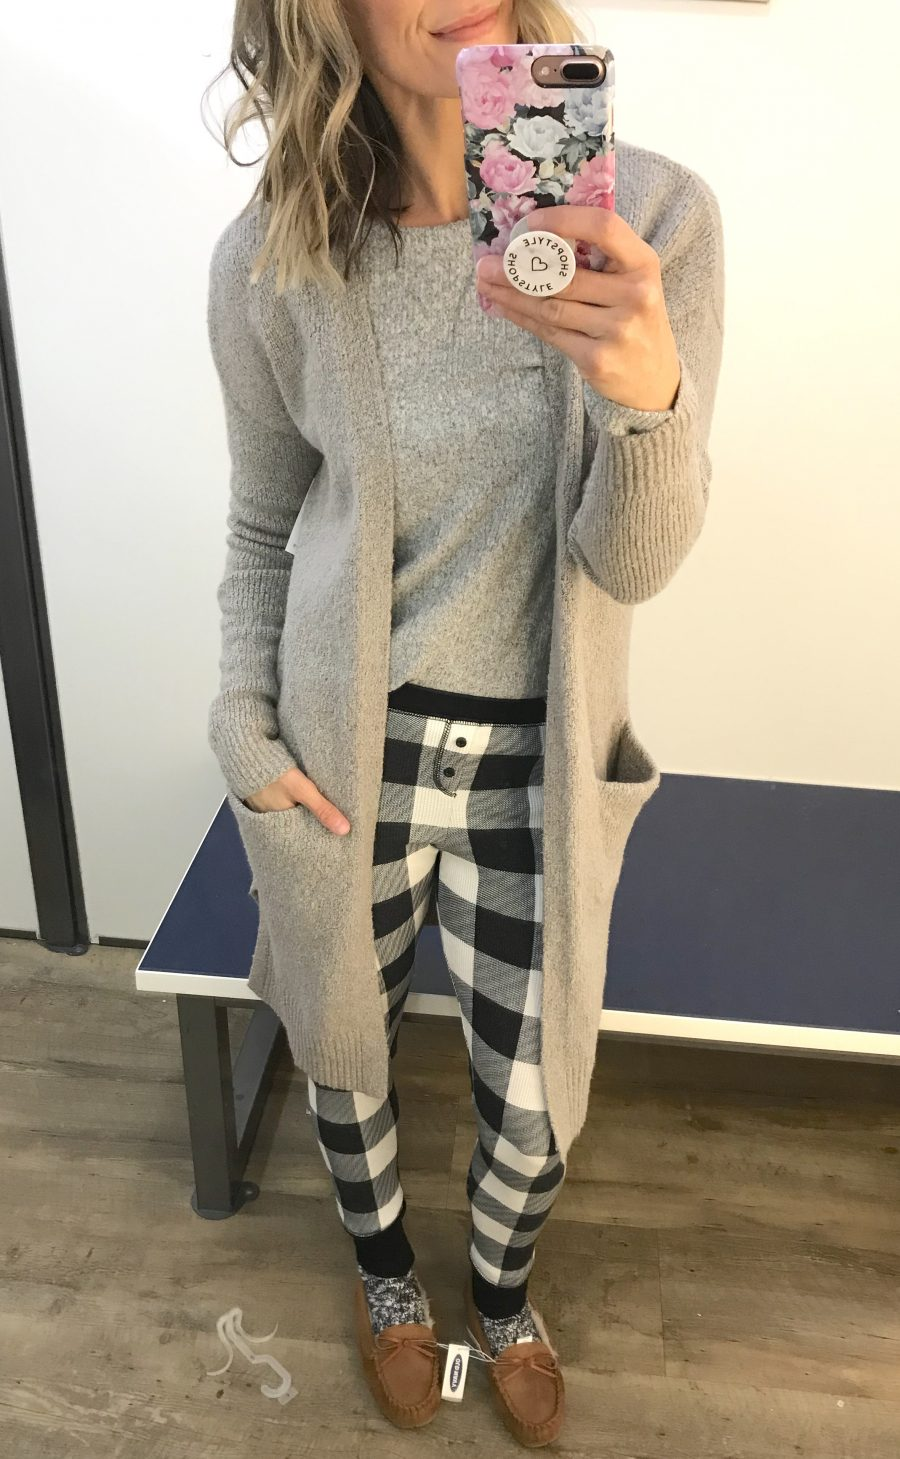 Old Navy winter try on haul, grey plush tee, heavy weight cardigan and pajama leggings